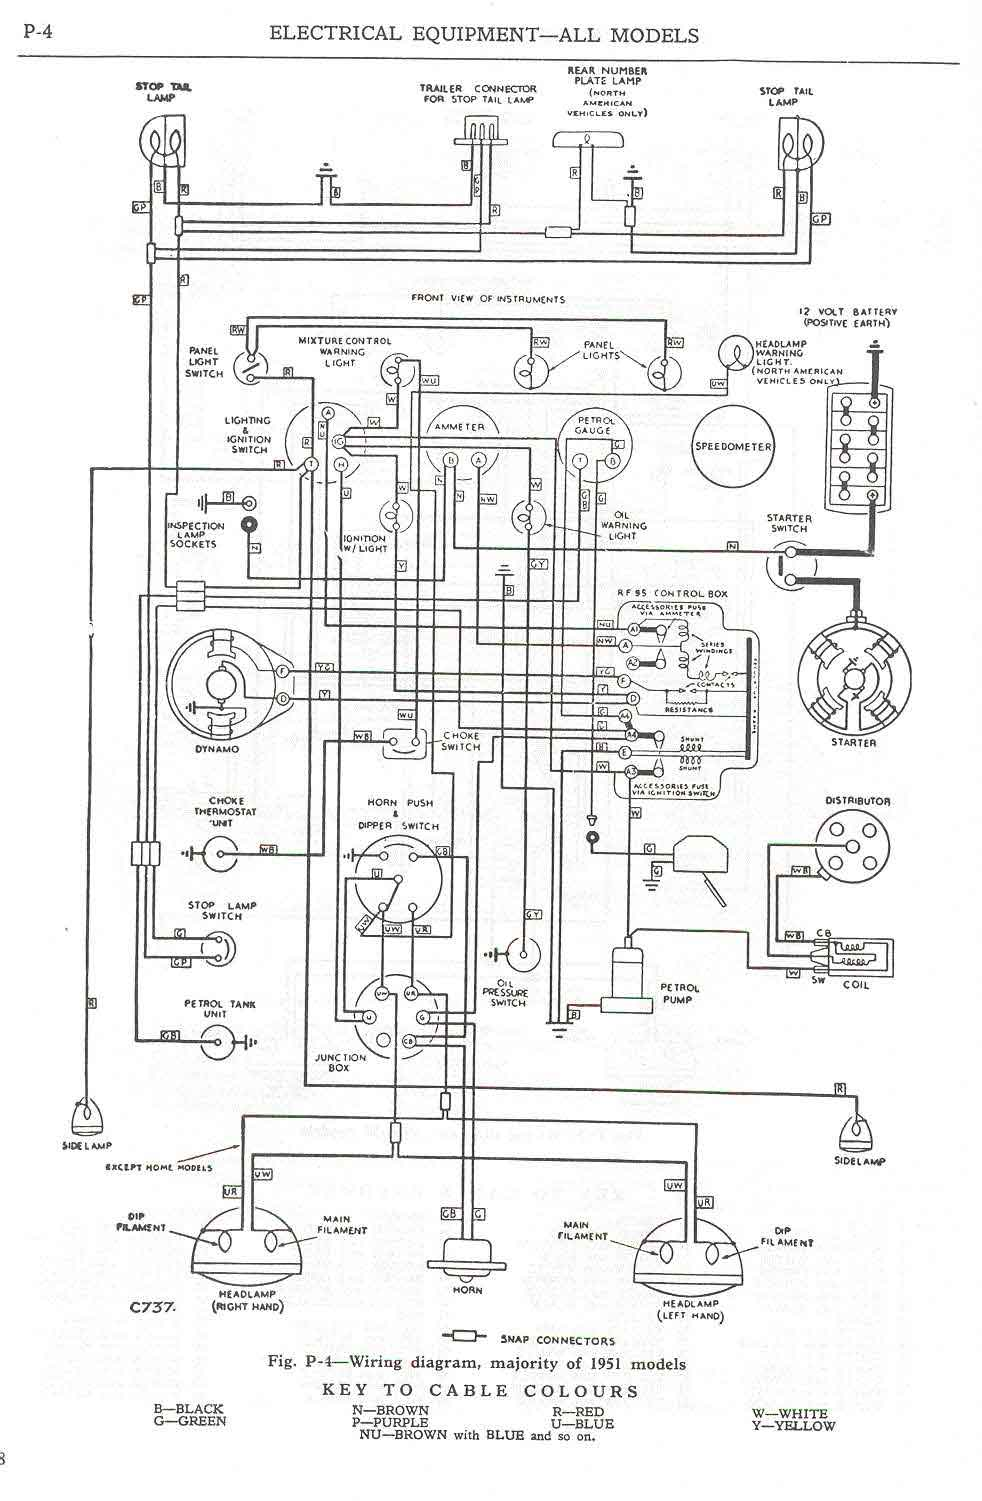 land rover wiring diagrams 1966 ford mustang diagram land rover wiring diagrams land rover faq - repair & maintenance - series ...